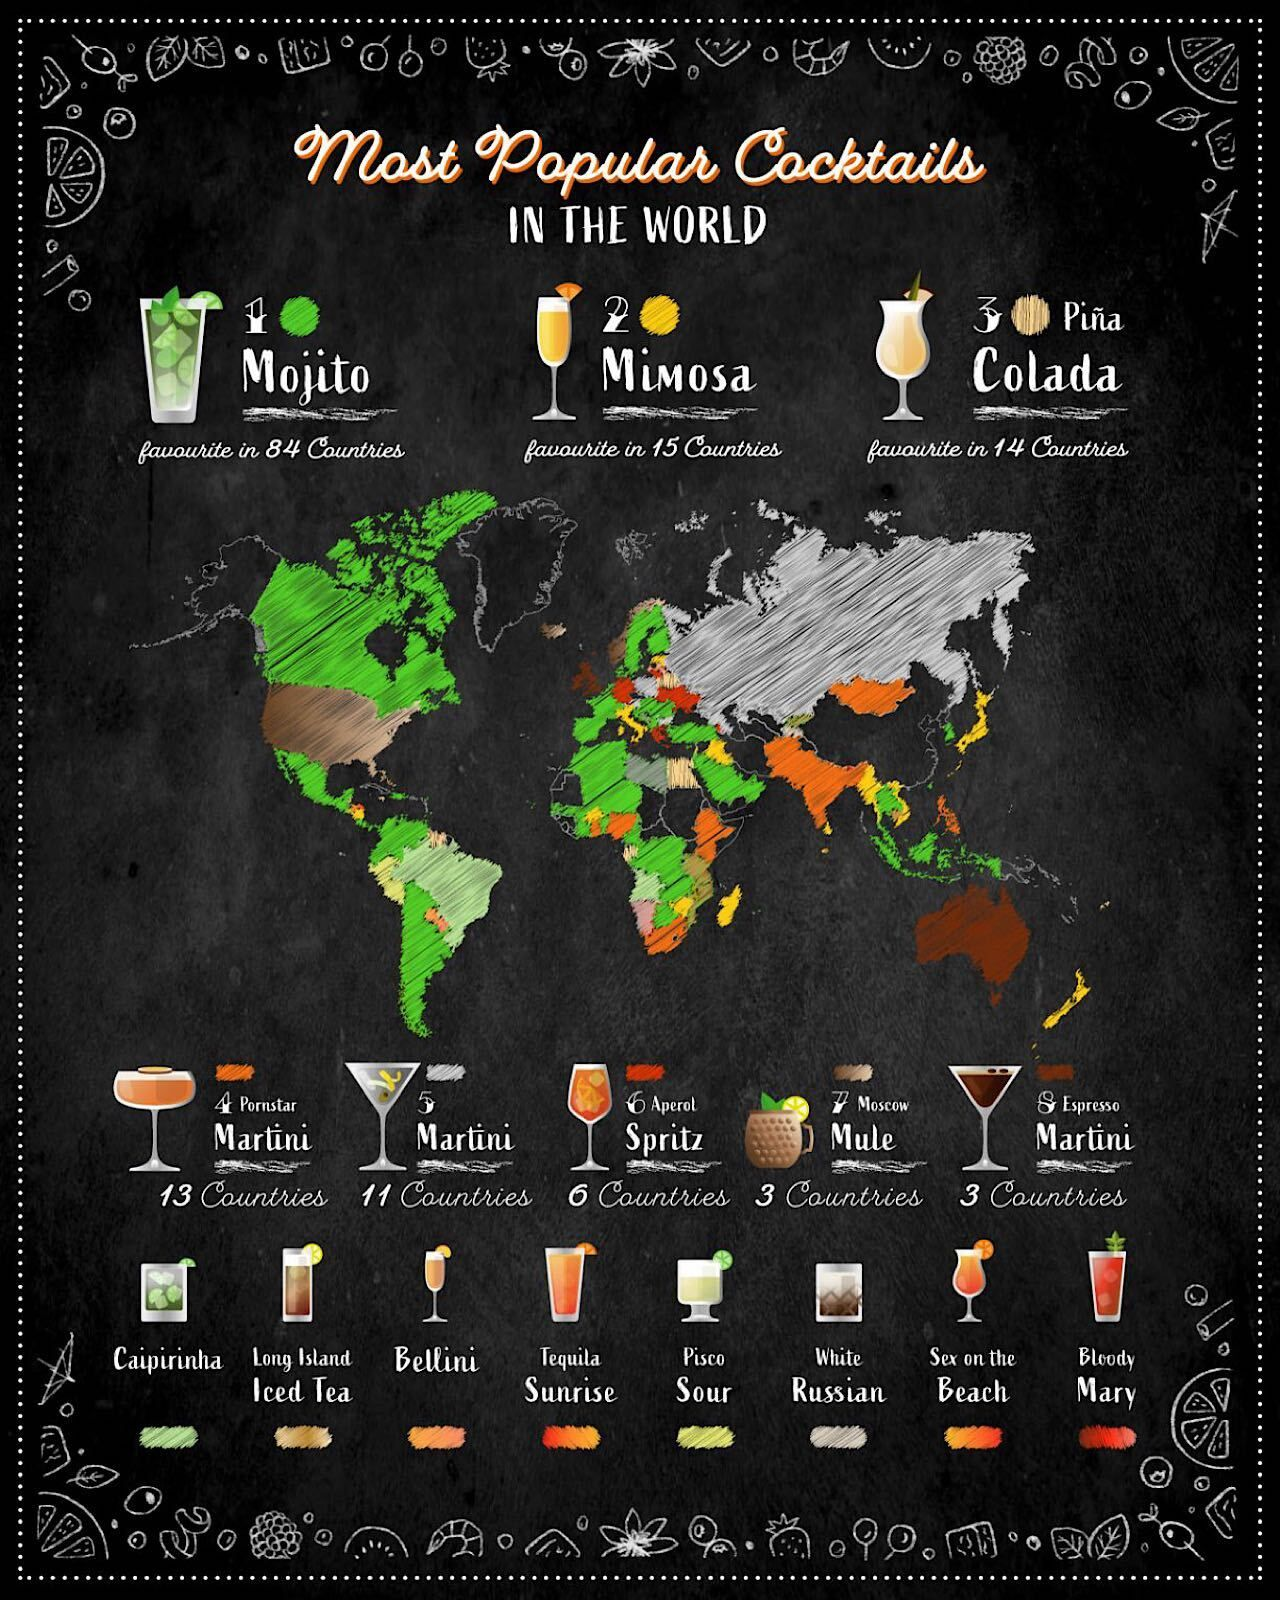 full size world map, most popular cocktails